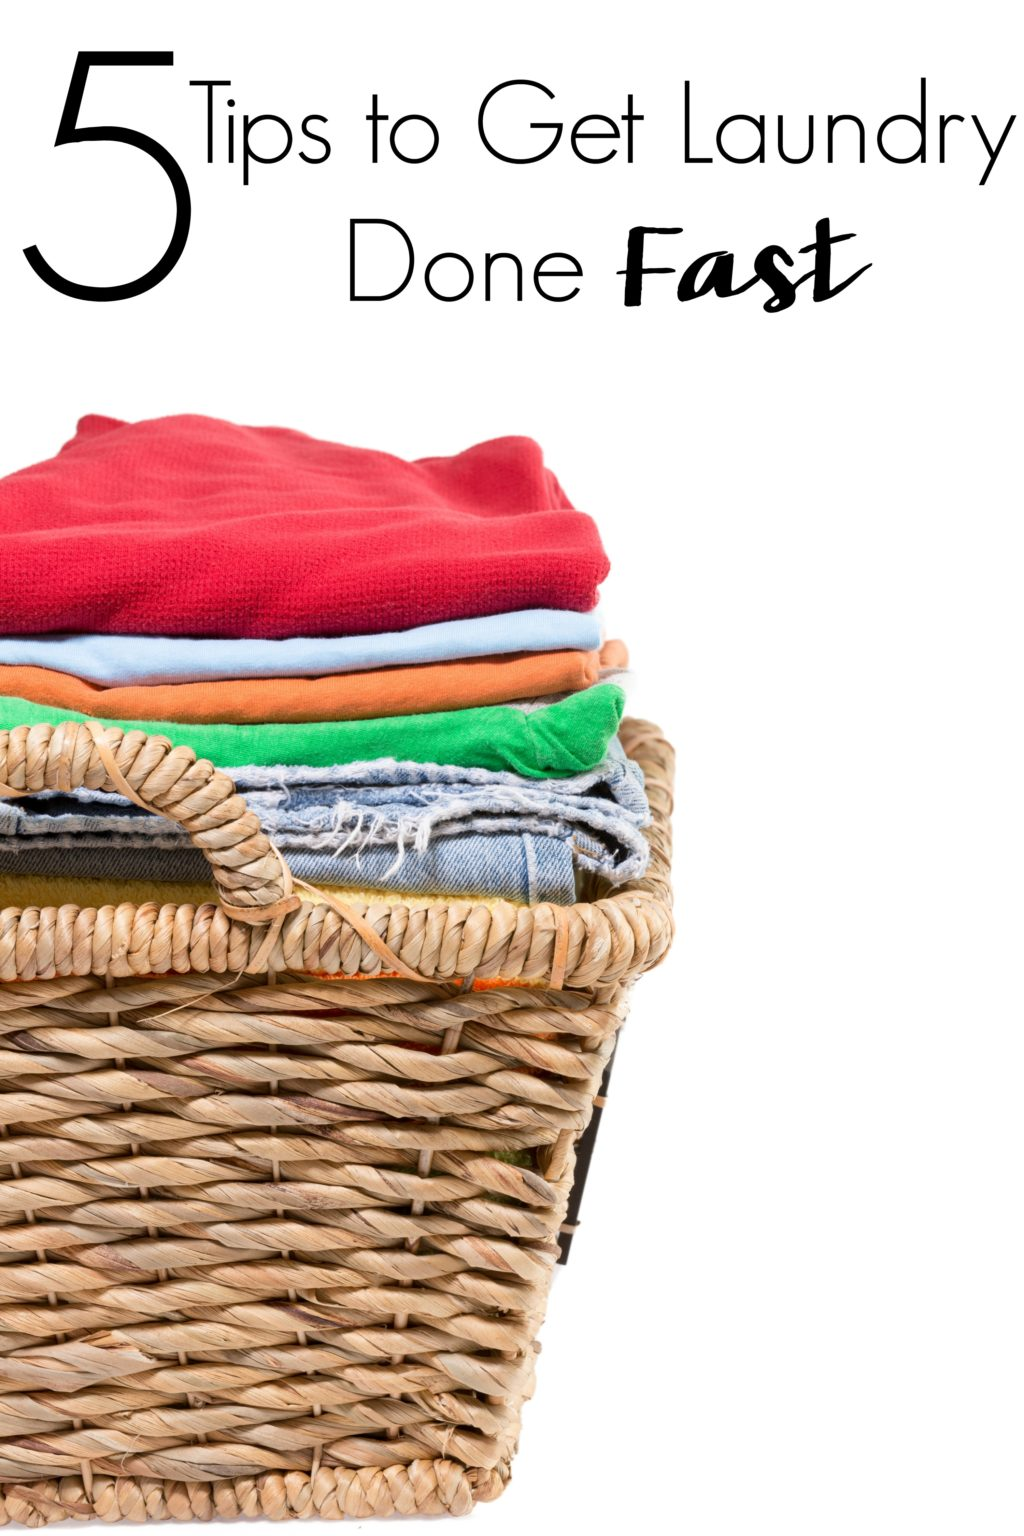 Don't allow mountains of laundry to dictate your days. Instead try these 5 Tips to Get Laundry Done Fast so you can get on with your life!